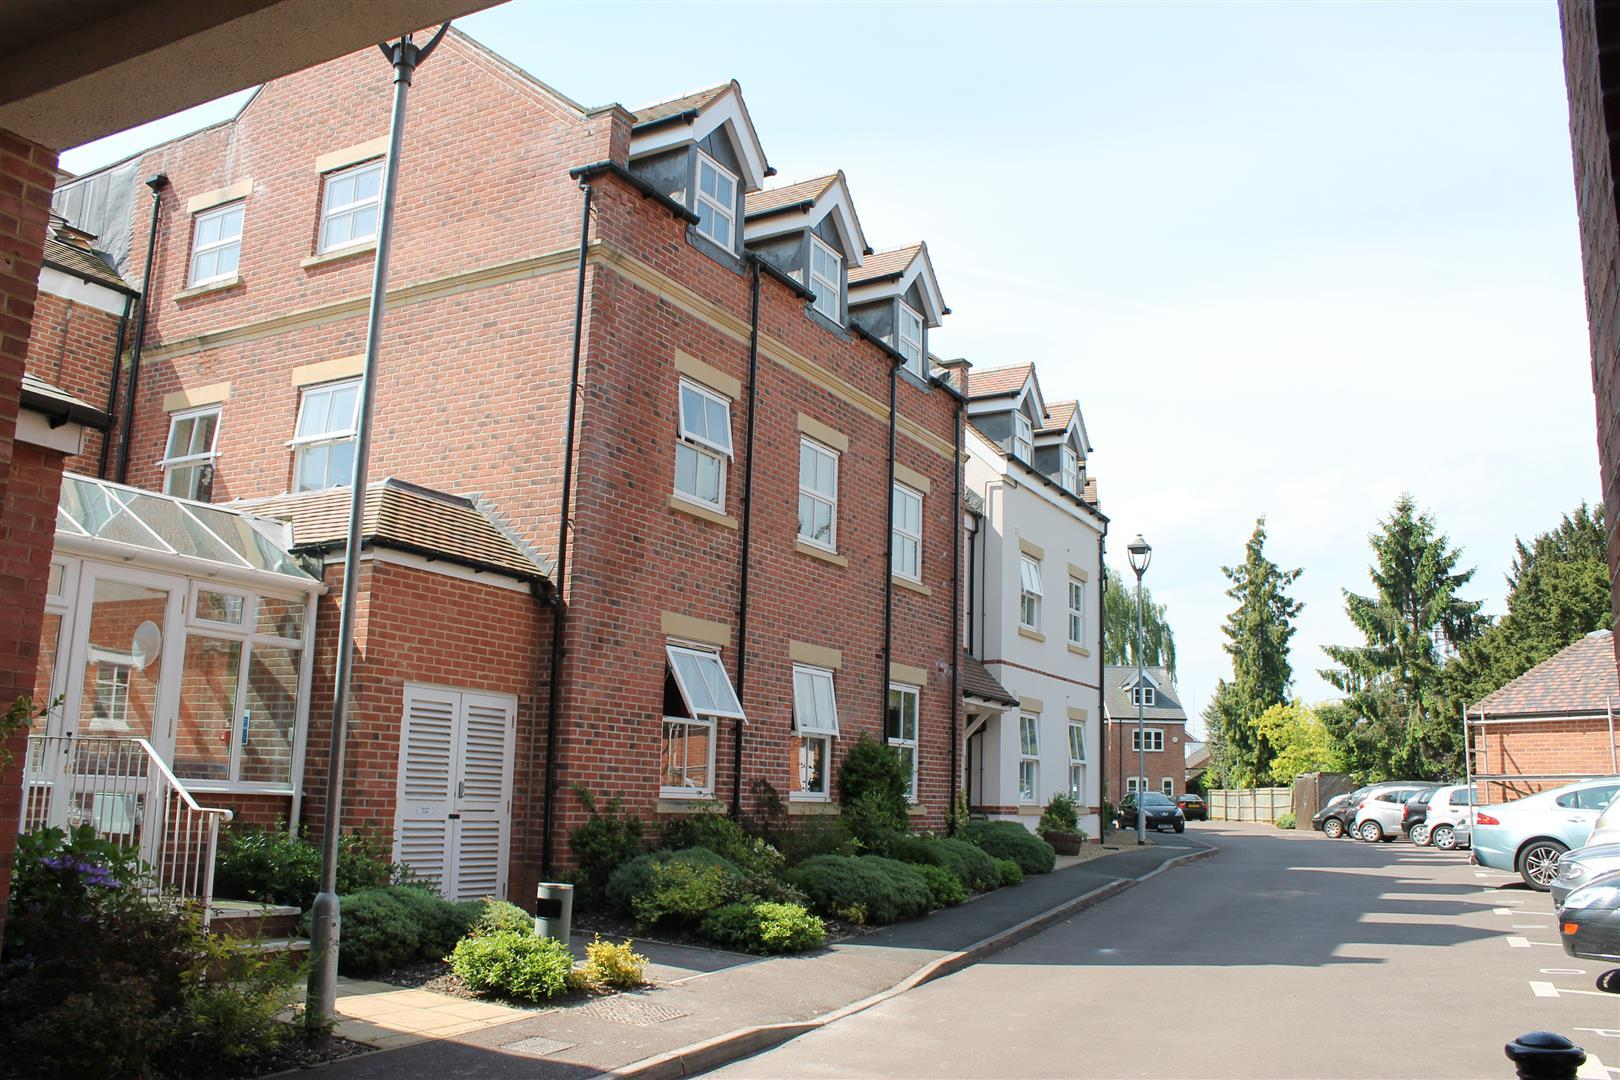 Stokes Mews Newent